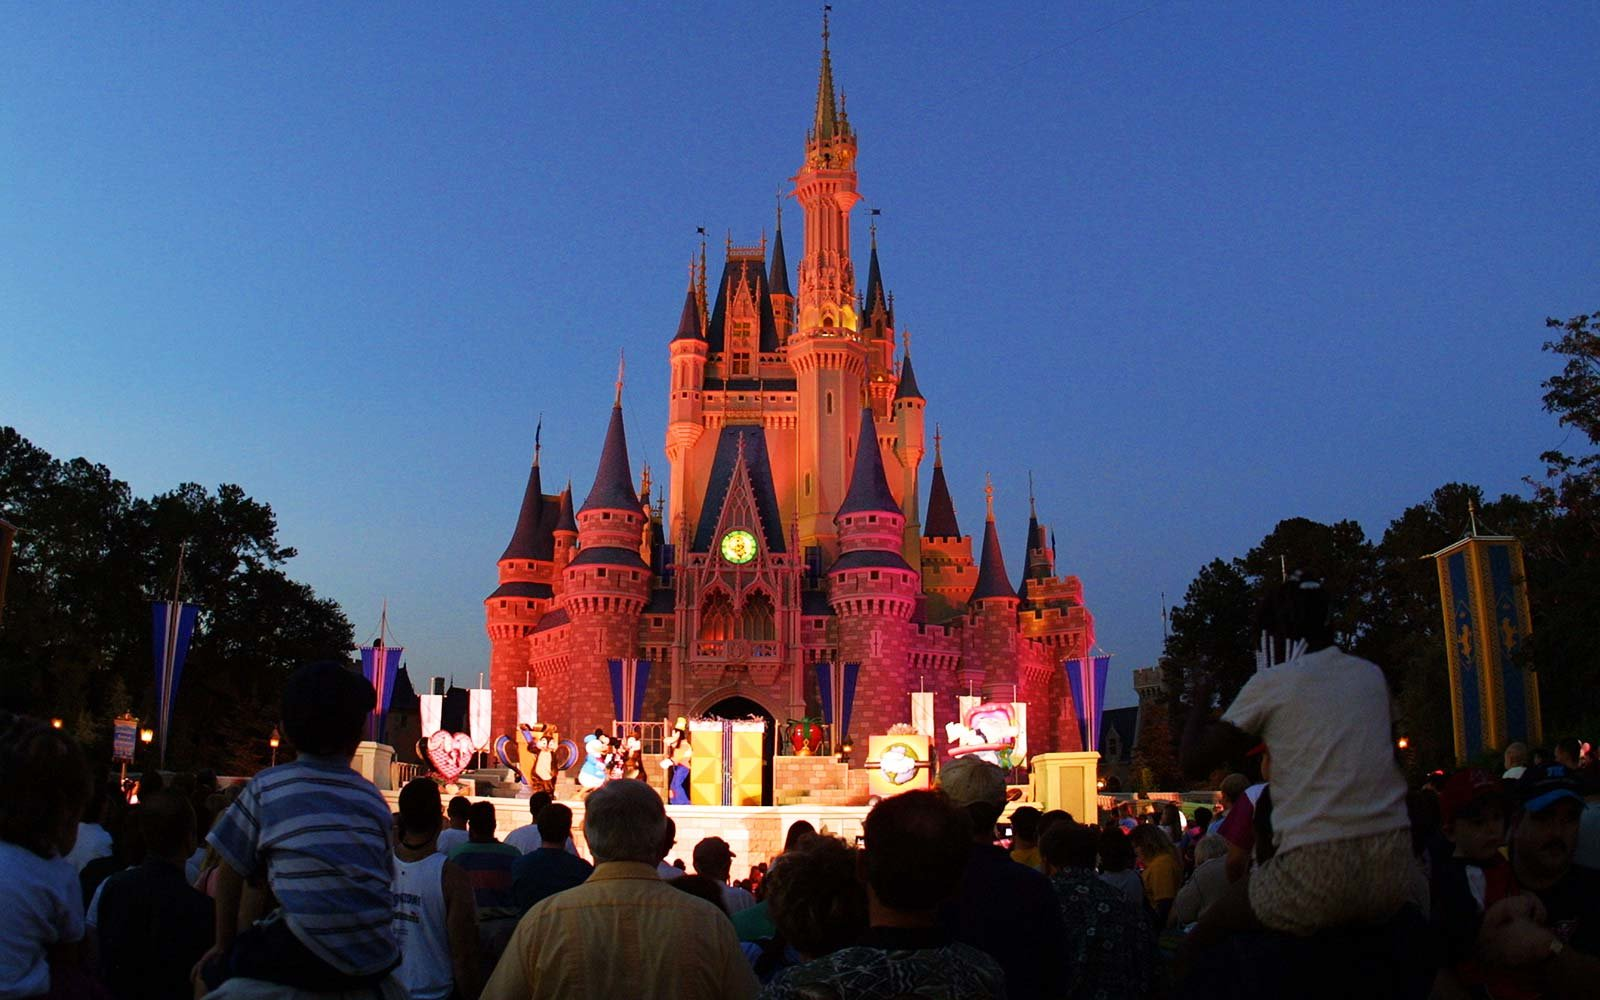 secrets of disney's cinderella castle | travel + leisure